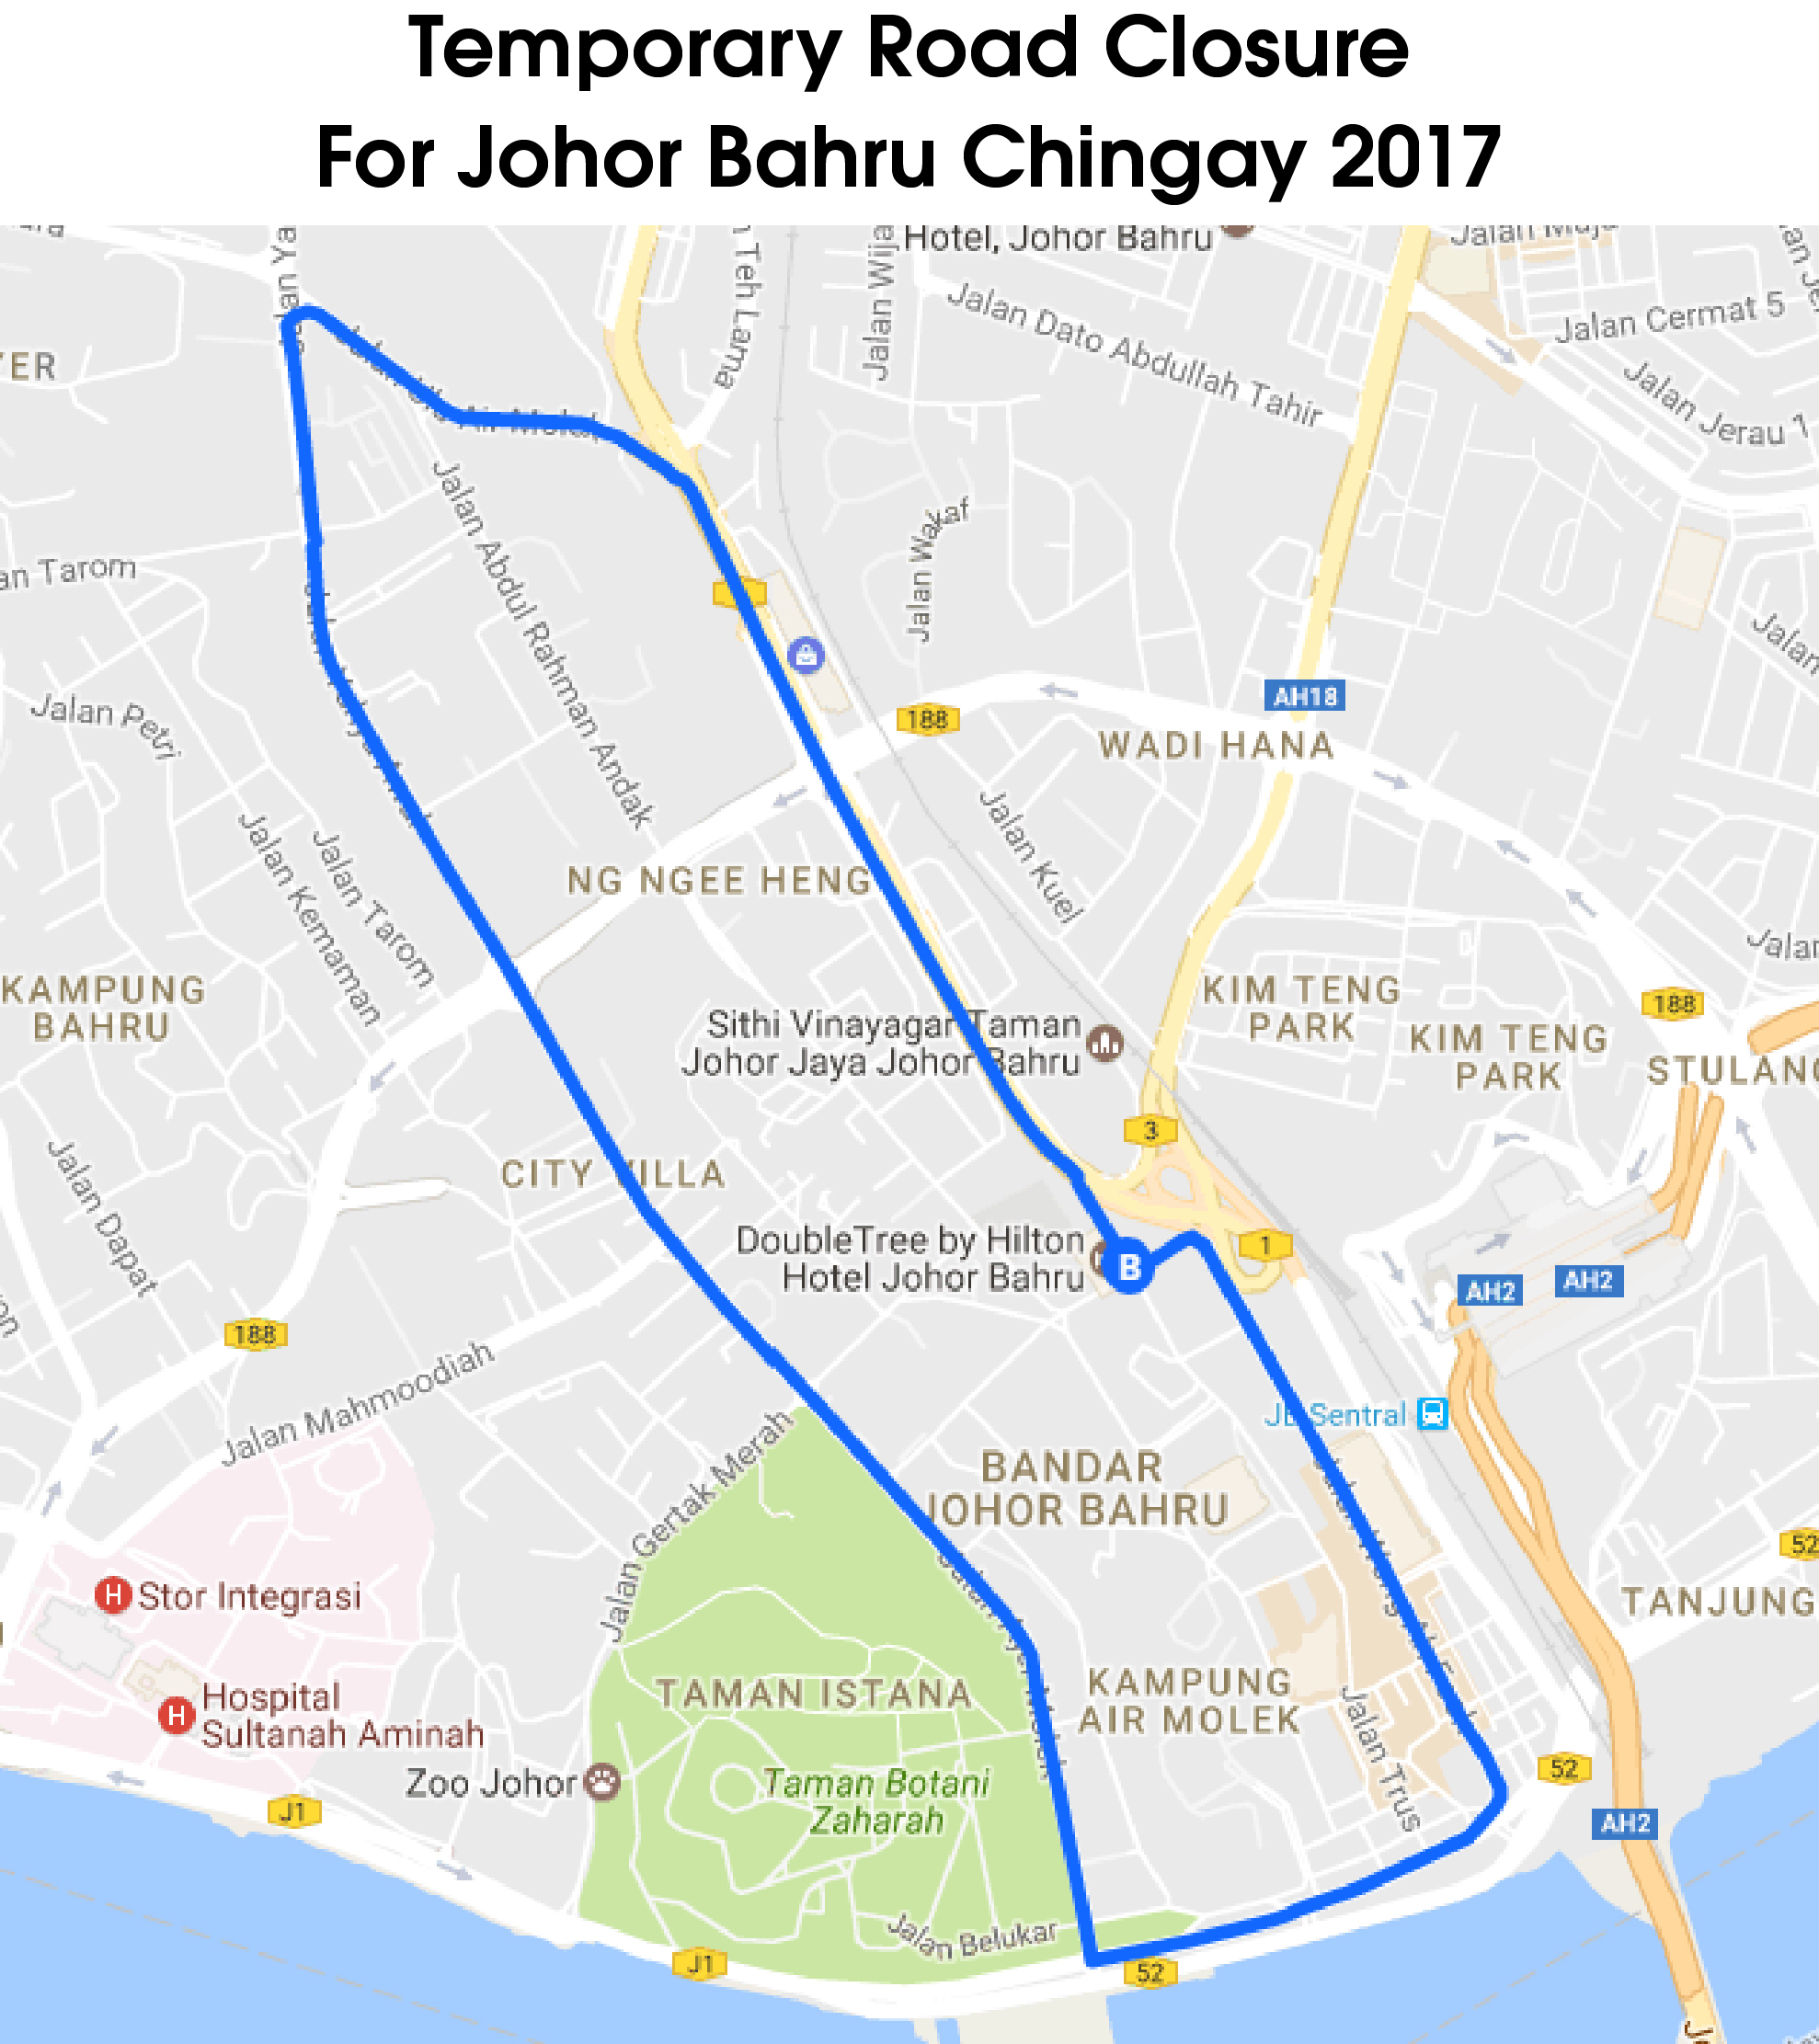 Affected roads during Johor Bahru Chingay 2017